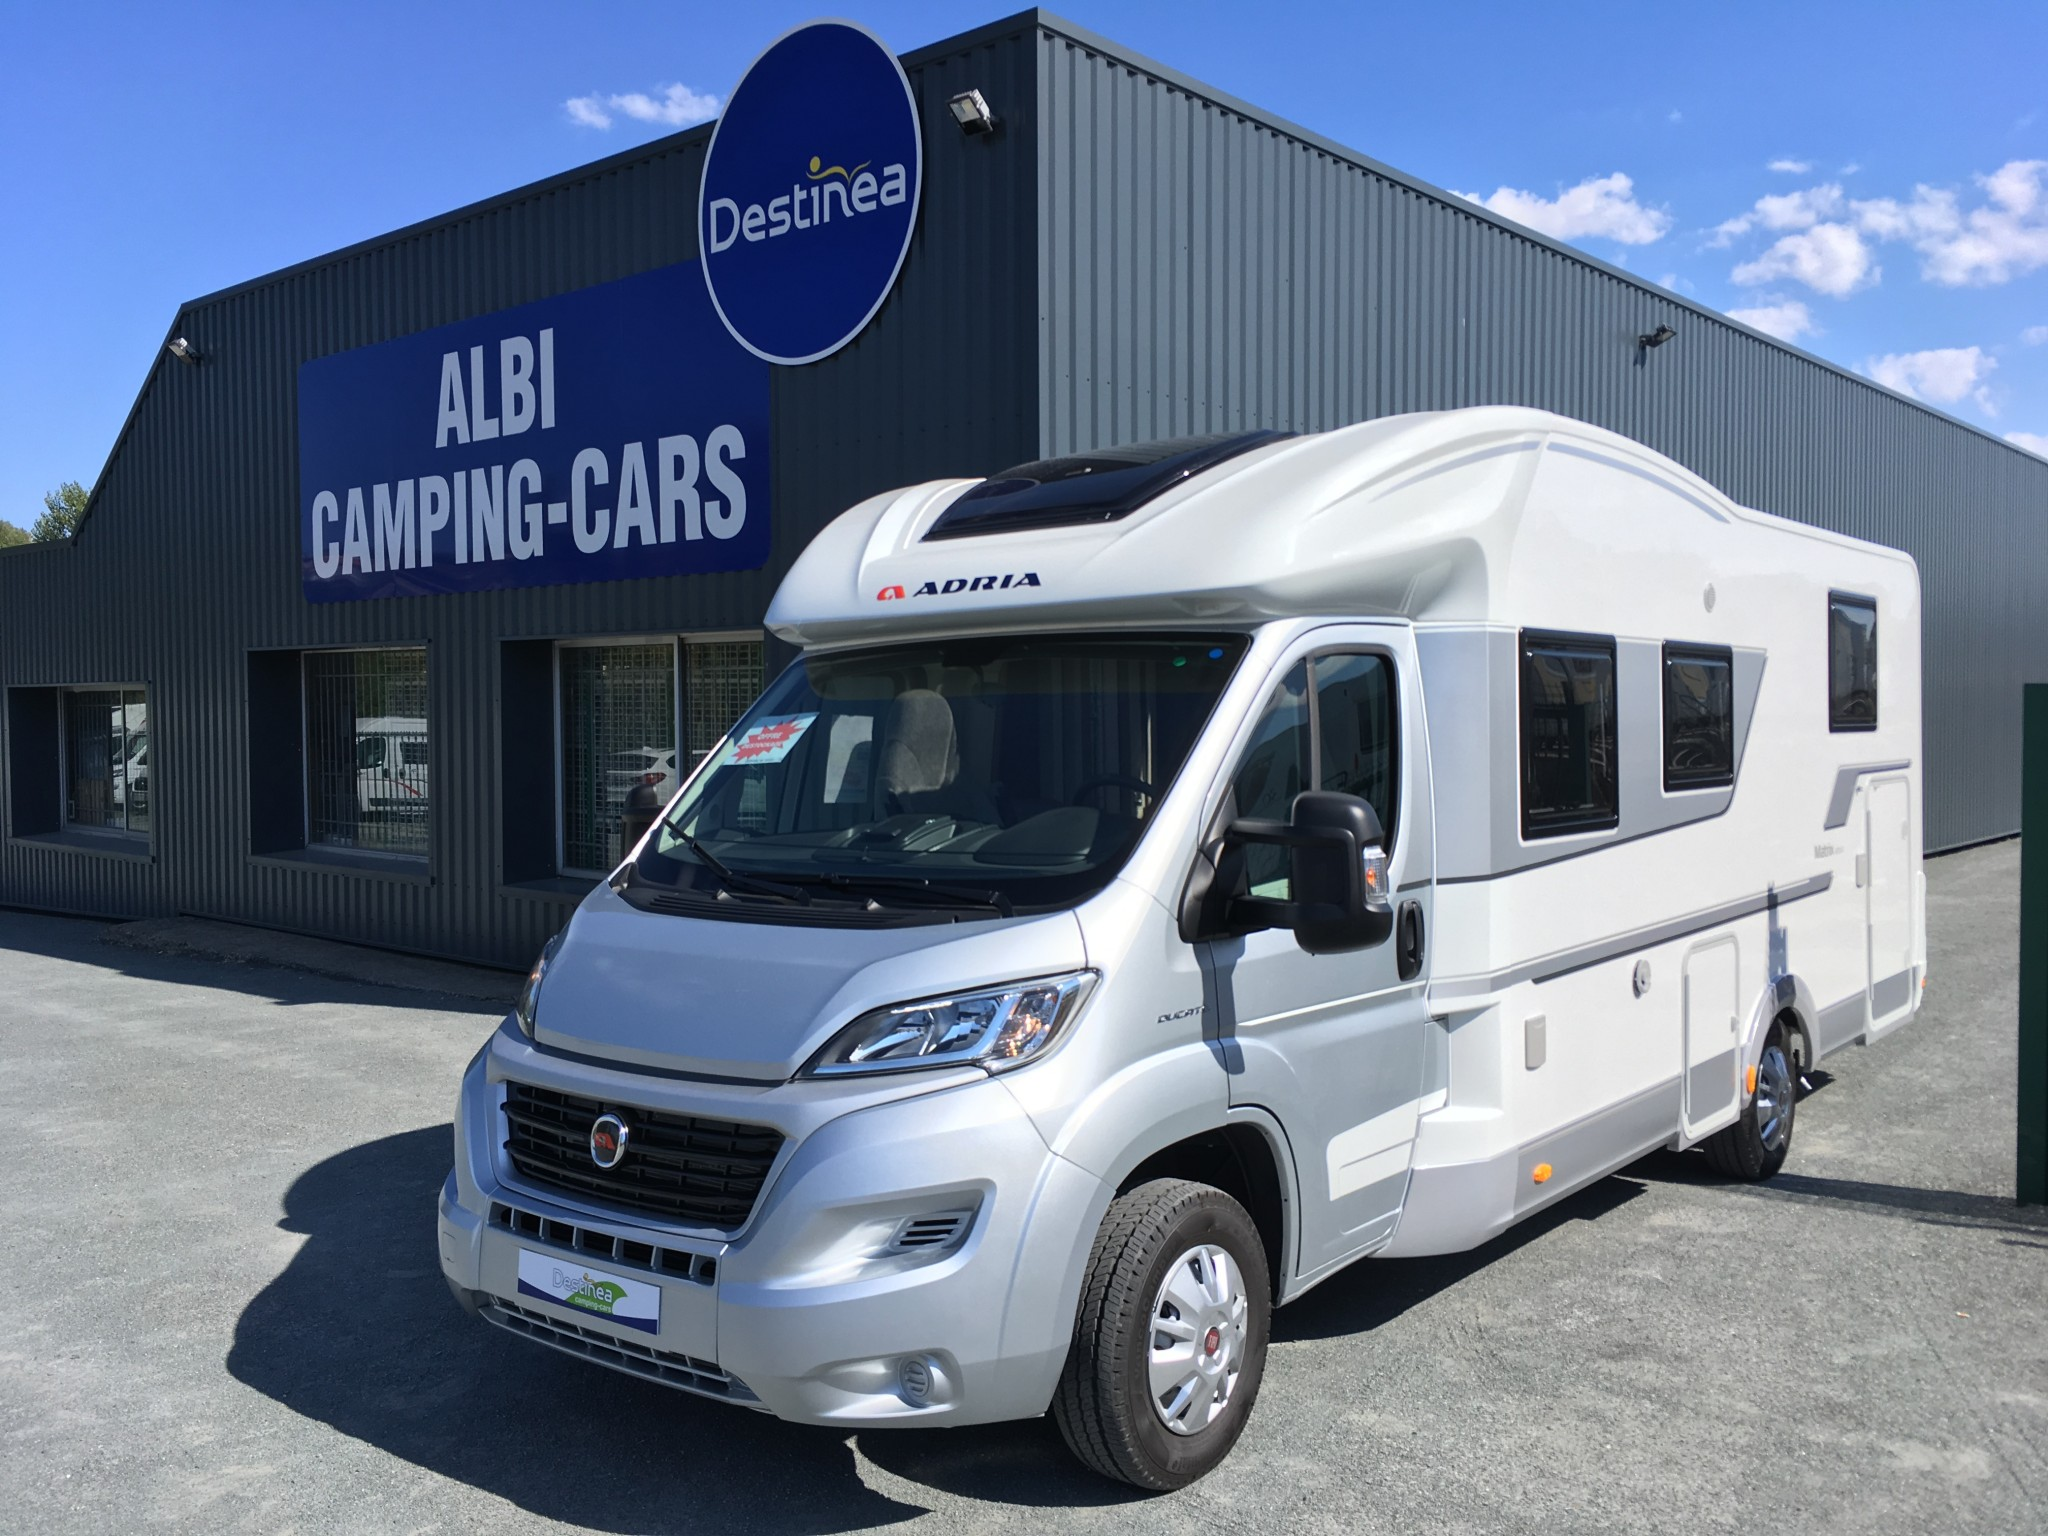 Camping-car ADRIA MATRIX 670 SC New line